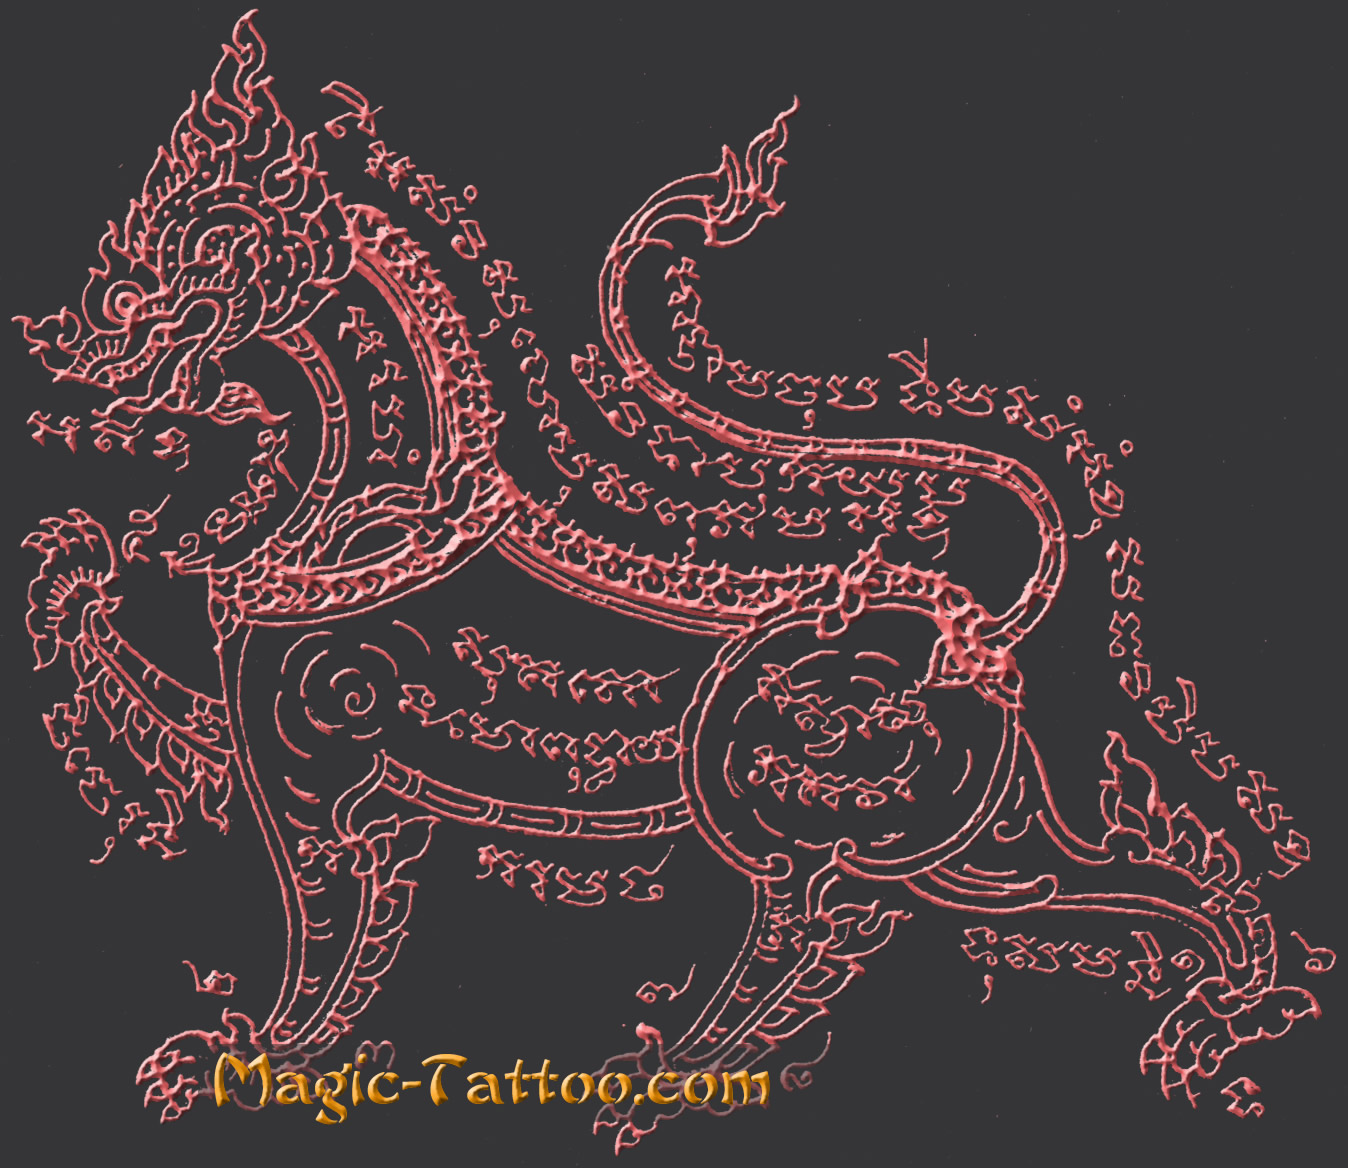 Magic Tattoo Tattoodesigns Submittals And Motives For Free Sak